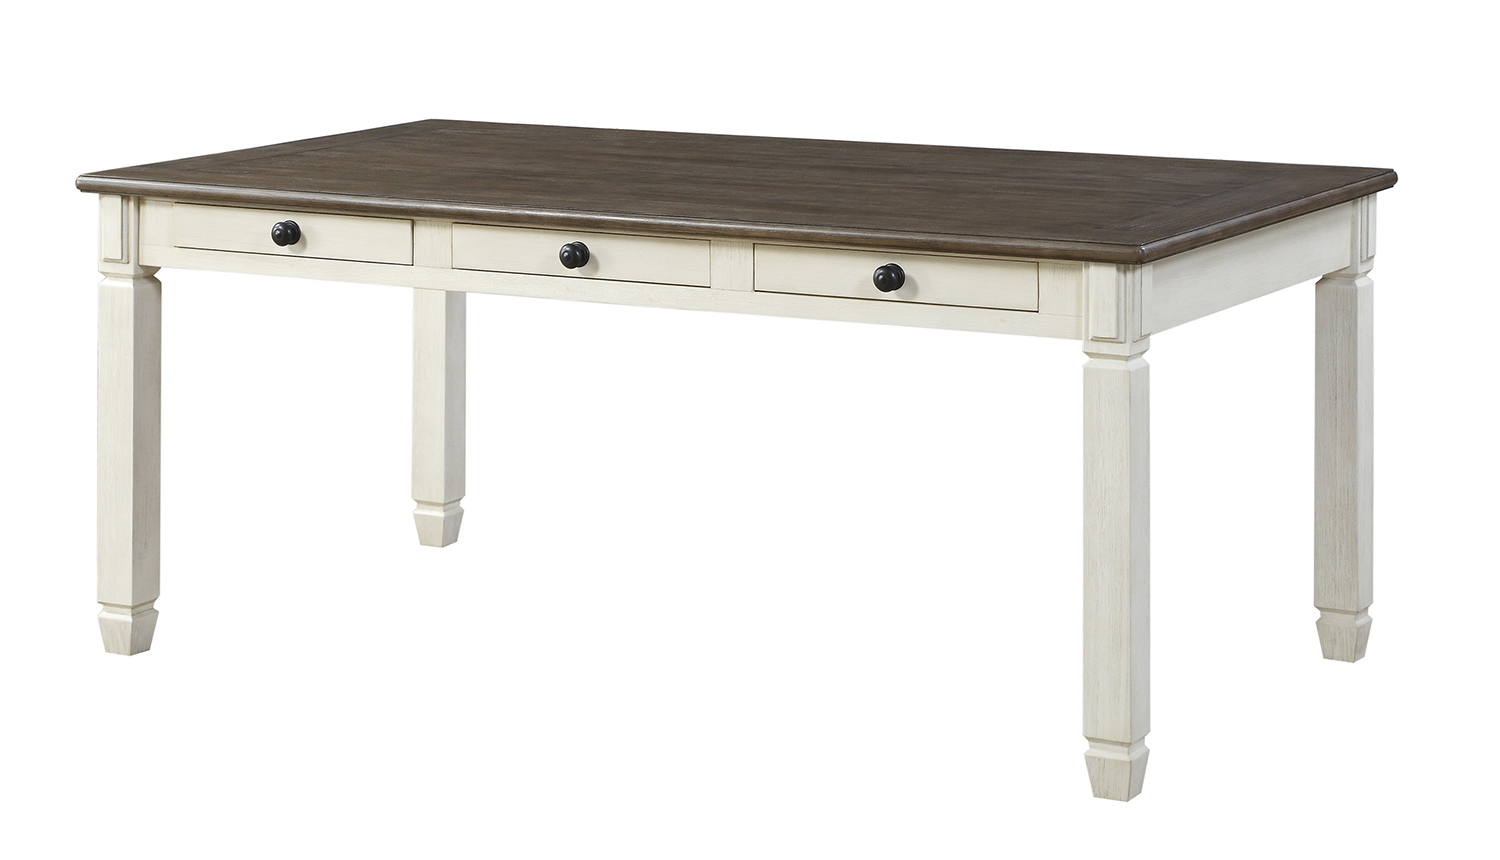 Homelegance Willow Bend Dining Table - Antique White